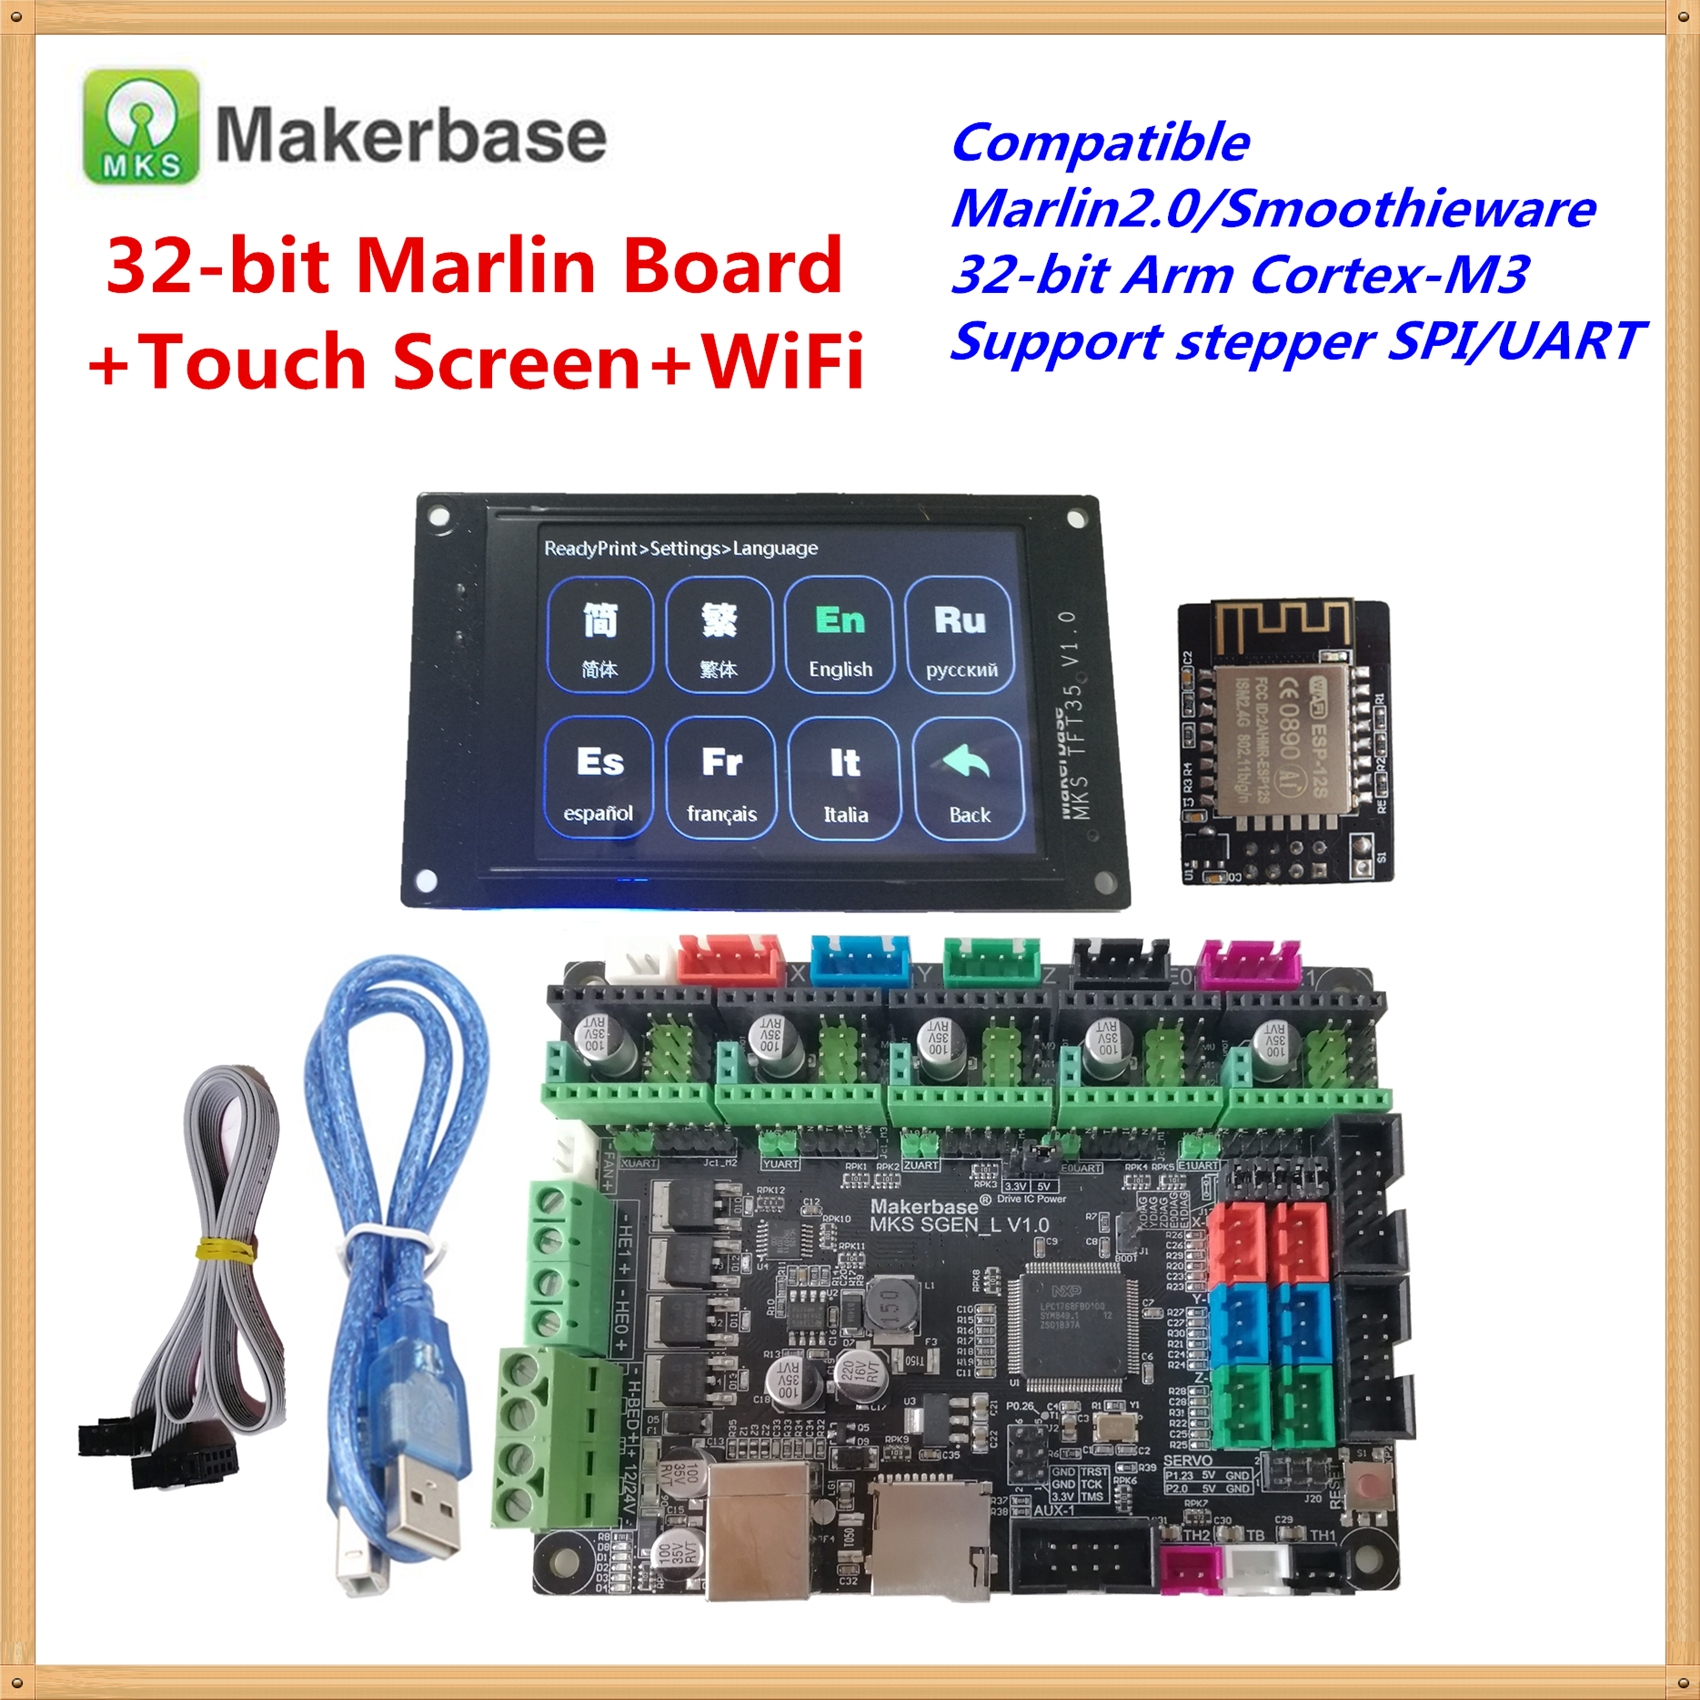 Compatible Marlin2.0 Smoothieware MKS SGEN-L Card + MKS TFT35 Touch LCD + MKS TFT WI-FI Part Similar BIGTREETECH SKR V1.3 Board